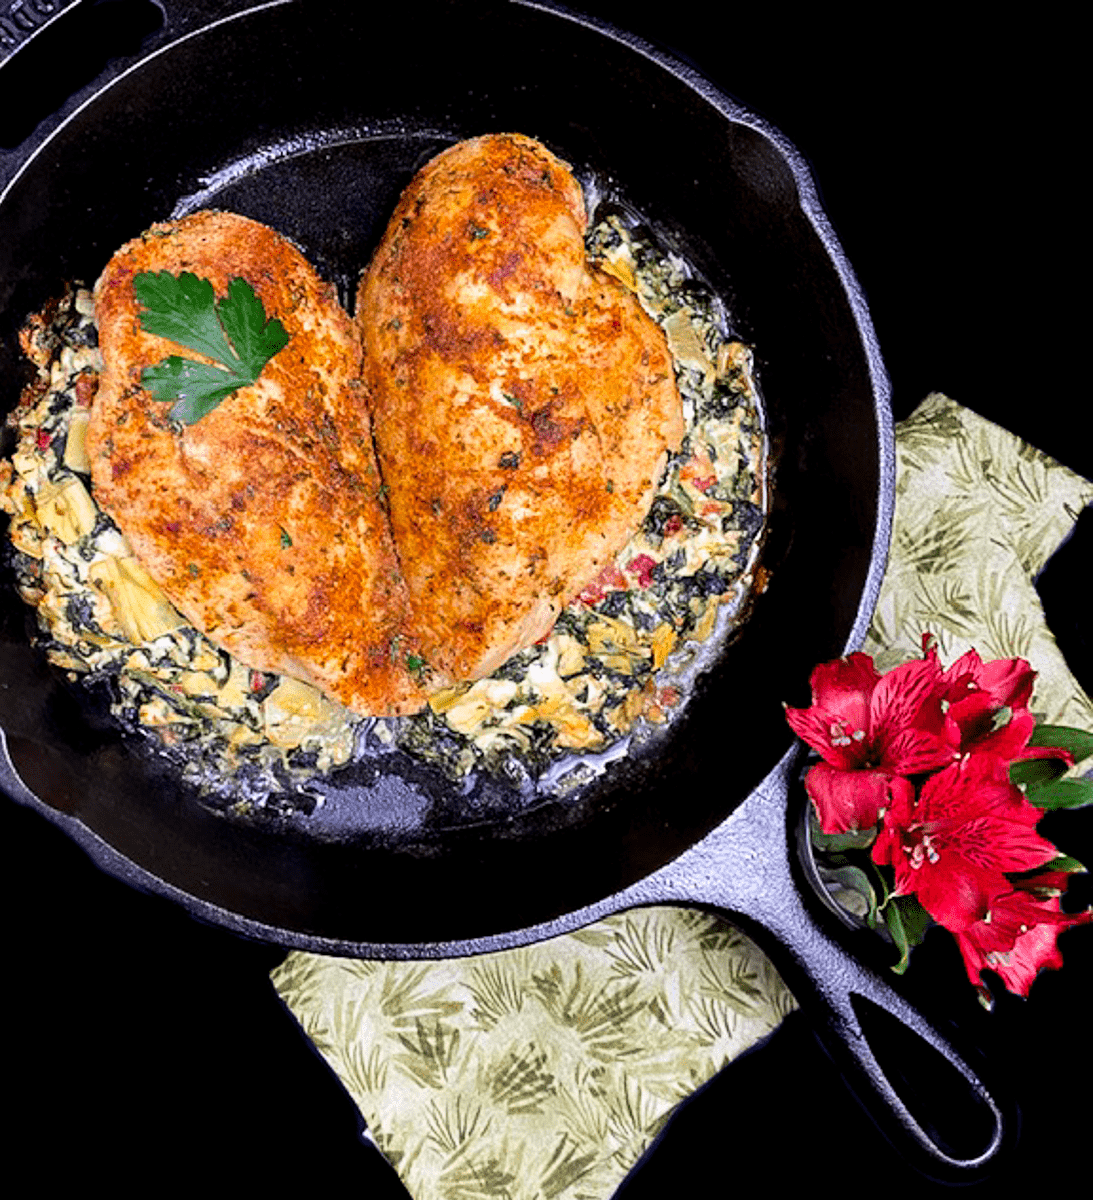 A black cast iron skillet filled with Cheesy Spinach & Artichoke Stuffed Chicken Breast {Keto, Low Carb, Grain & Gluten Free}